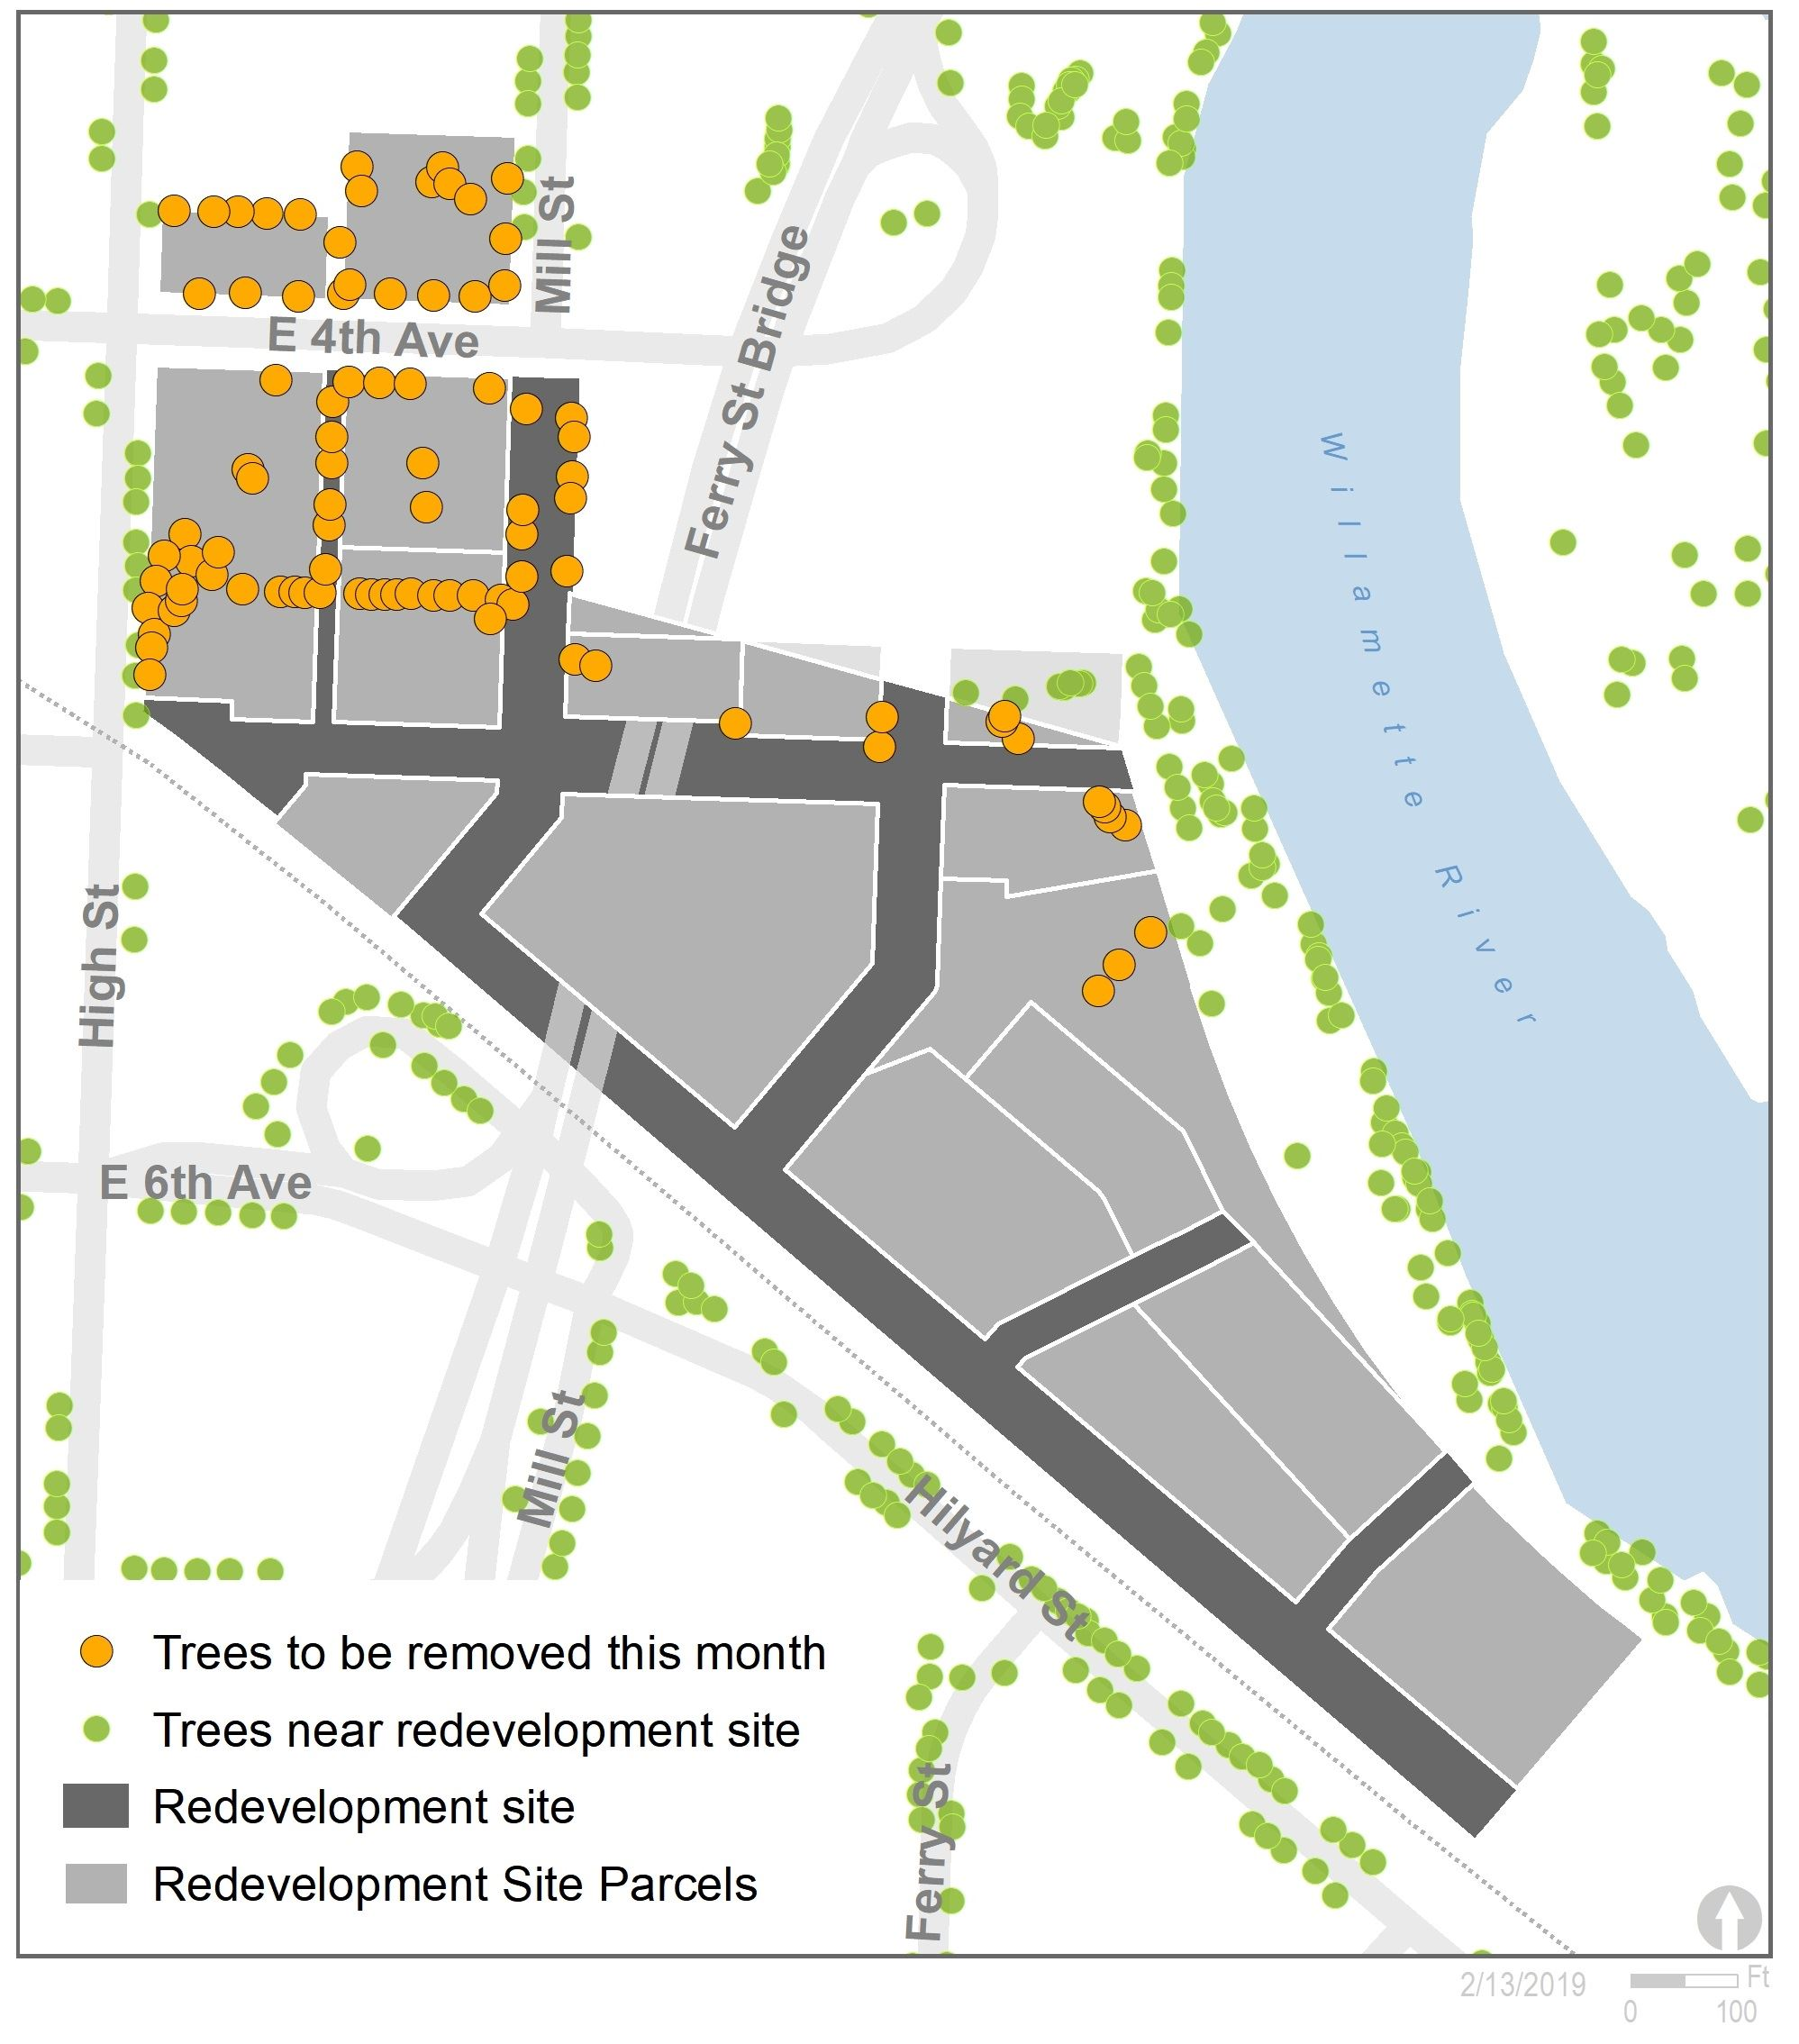 diagram showing trees to be removed from the redevelopment site